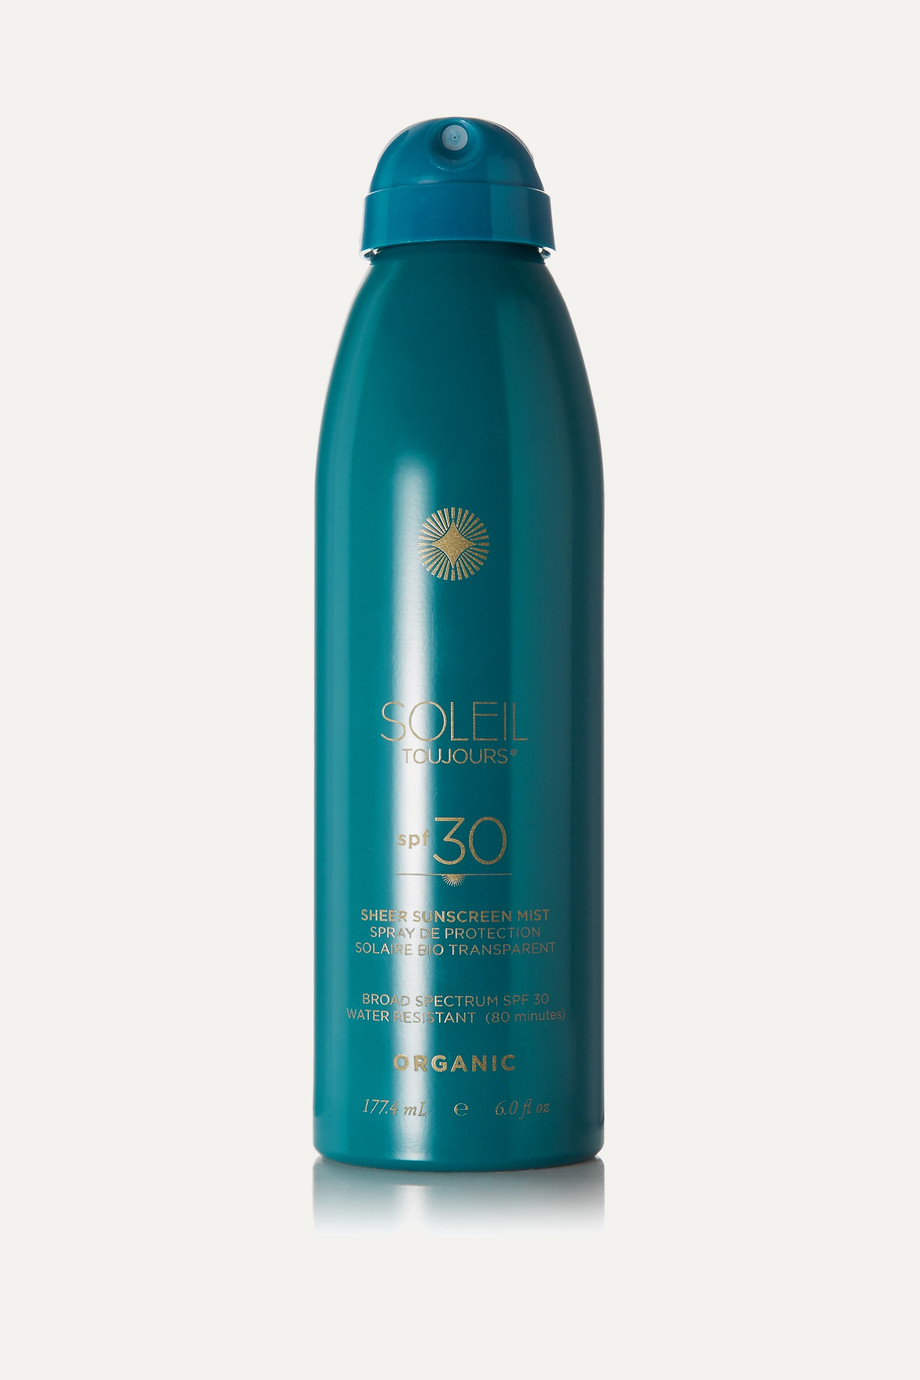 Soleil Toujours + NET SUSTAIN SPF30 Organic Sheer Sunscreen Mist, 177.4ml